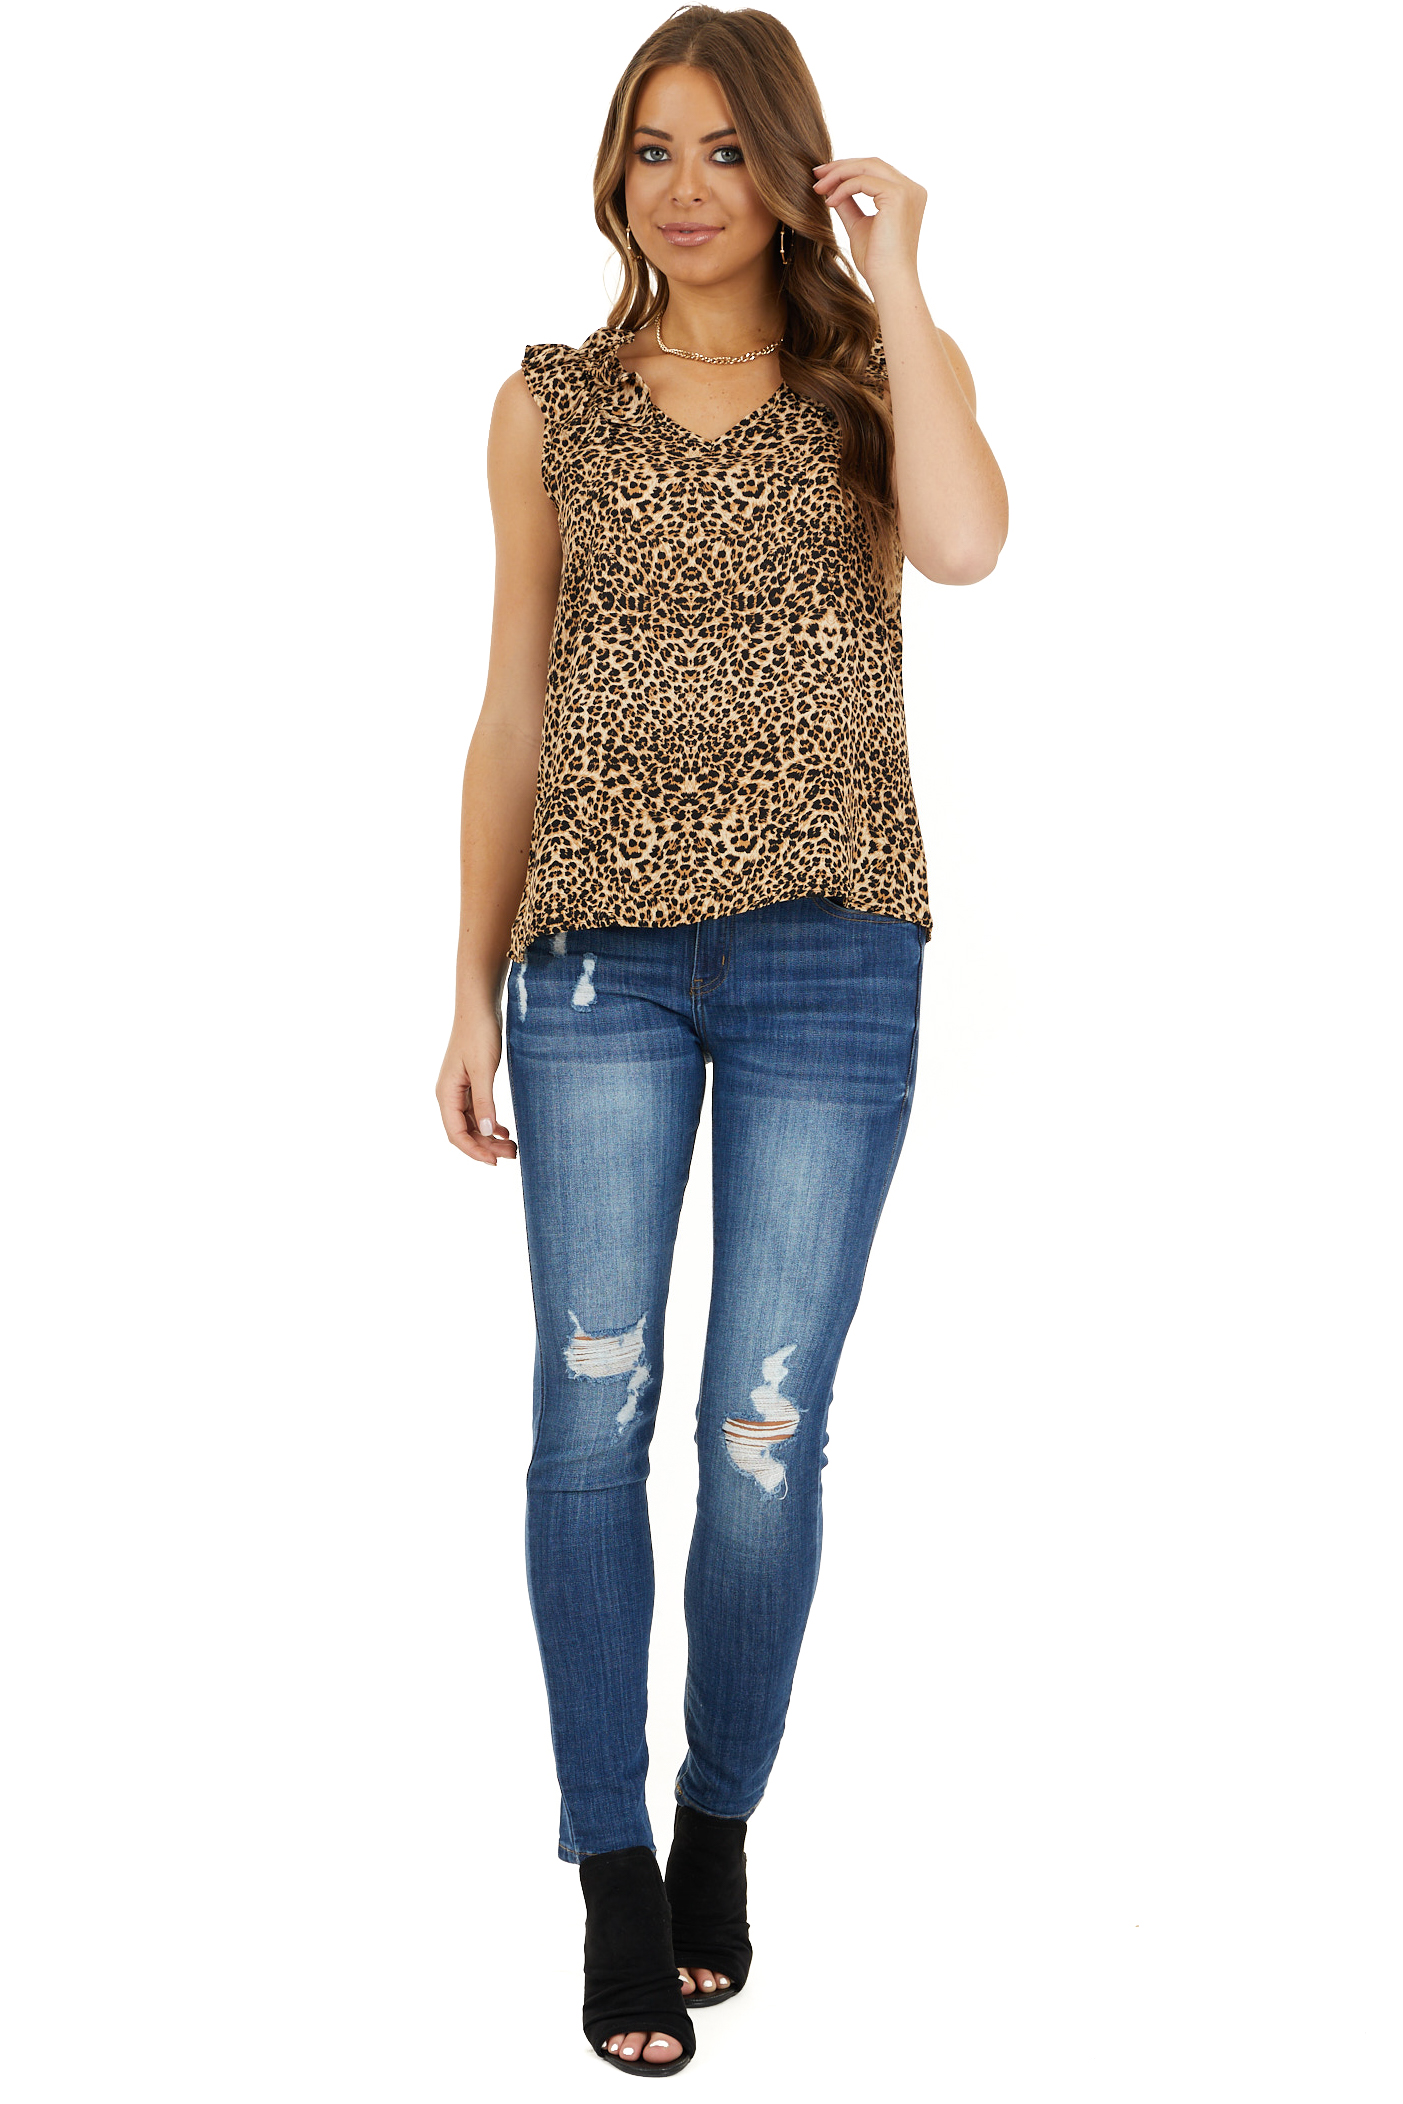 Beige Cheetah Print V Neck Top with Ruffle Cap Sleeves front full body